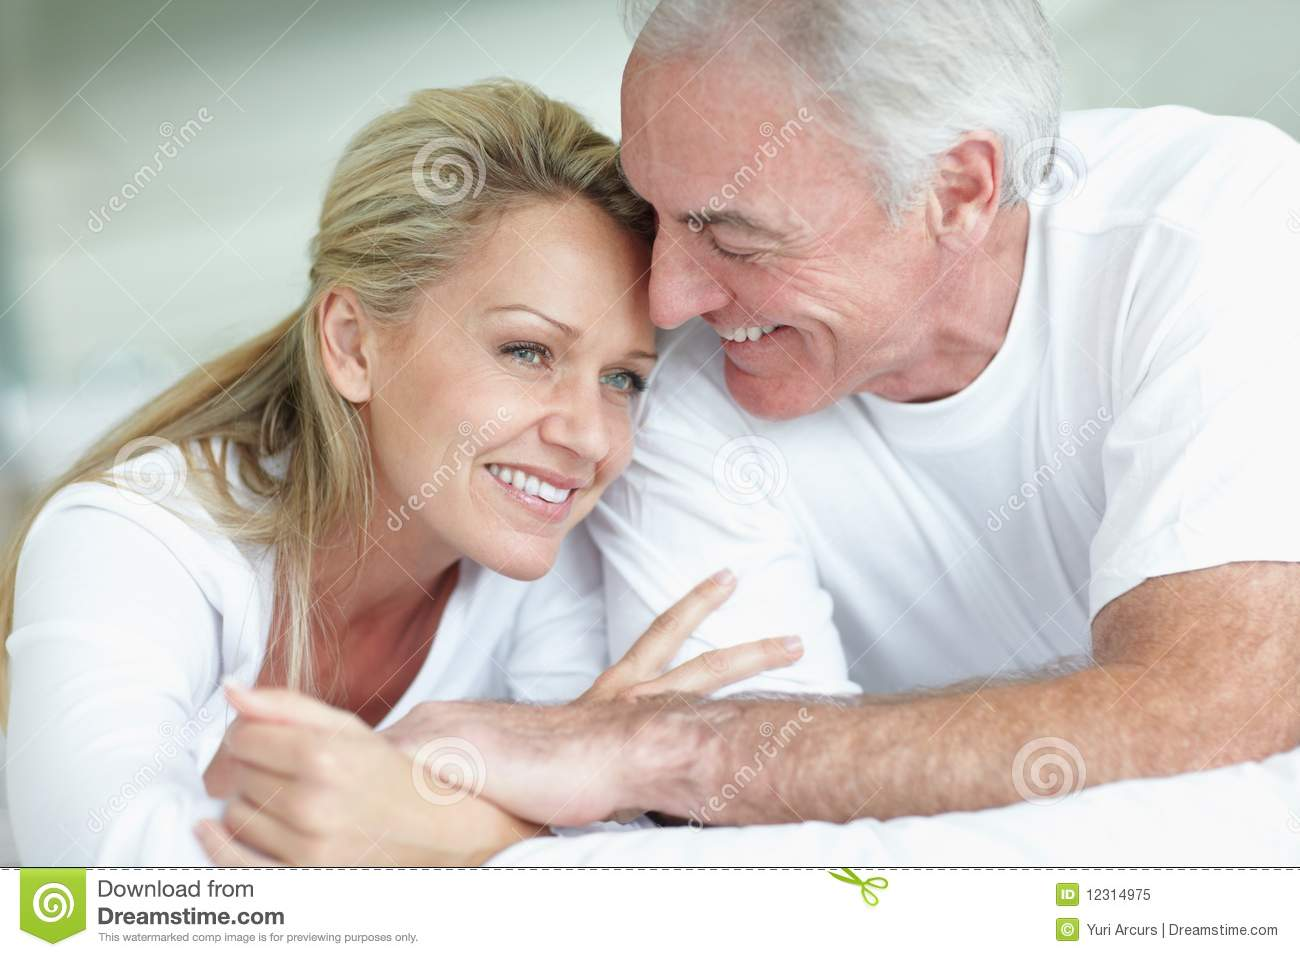 royalty free stock photo closeup of a romantic couple